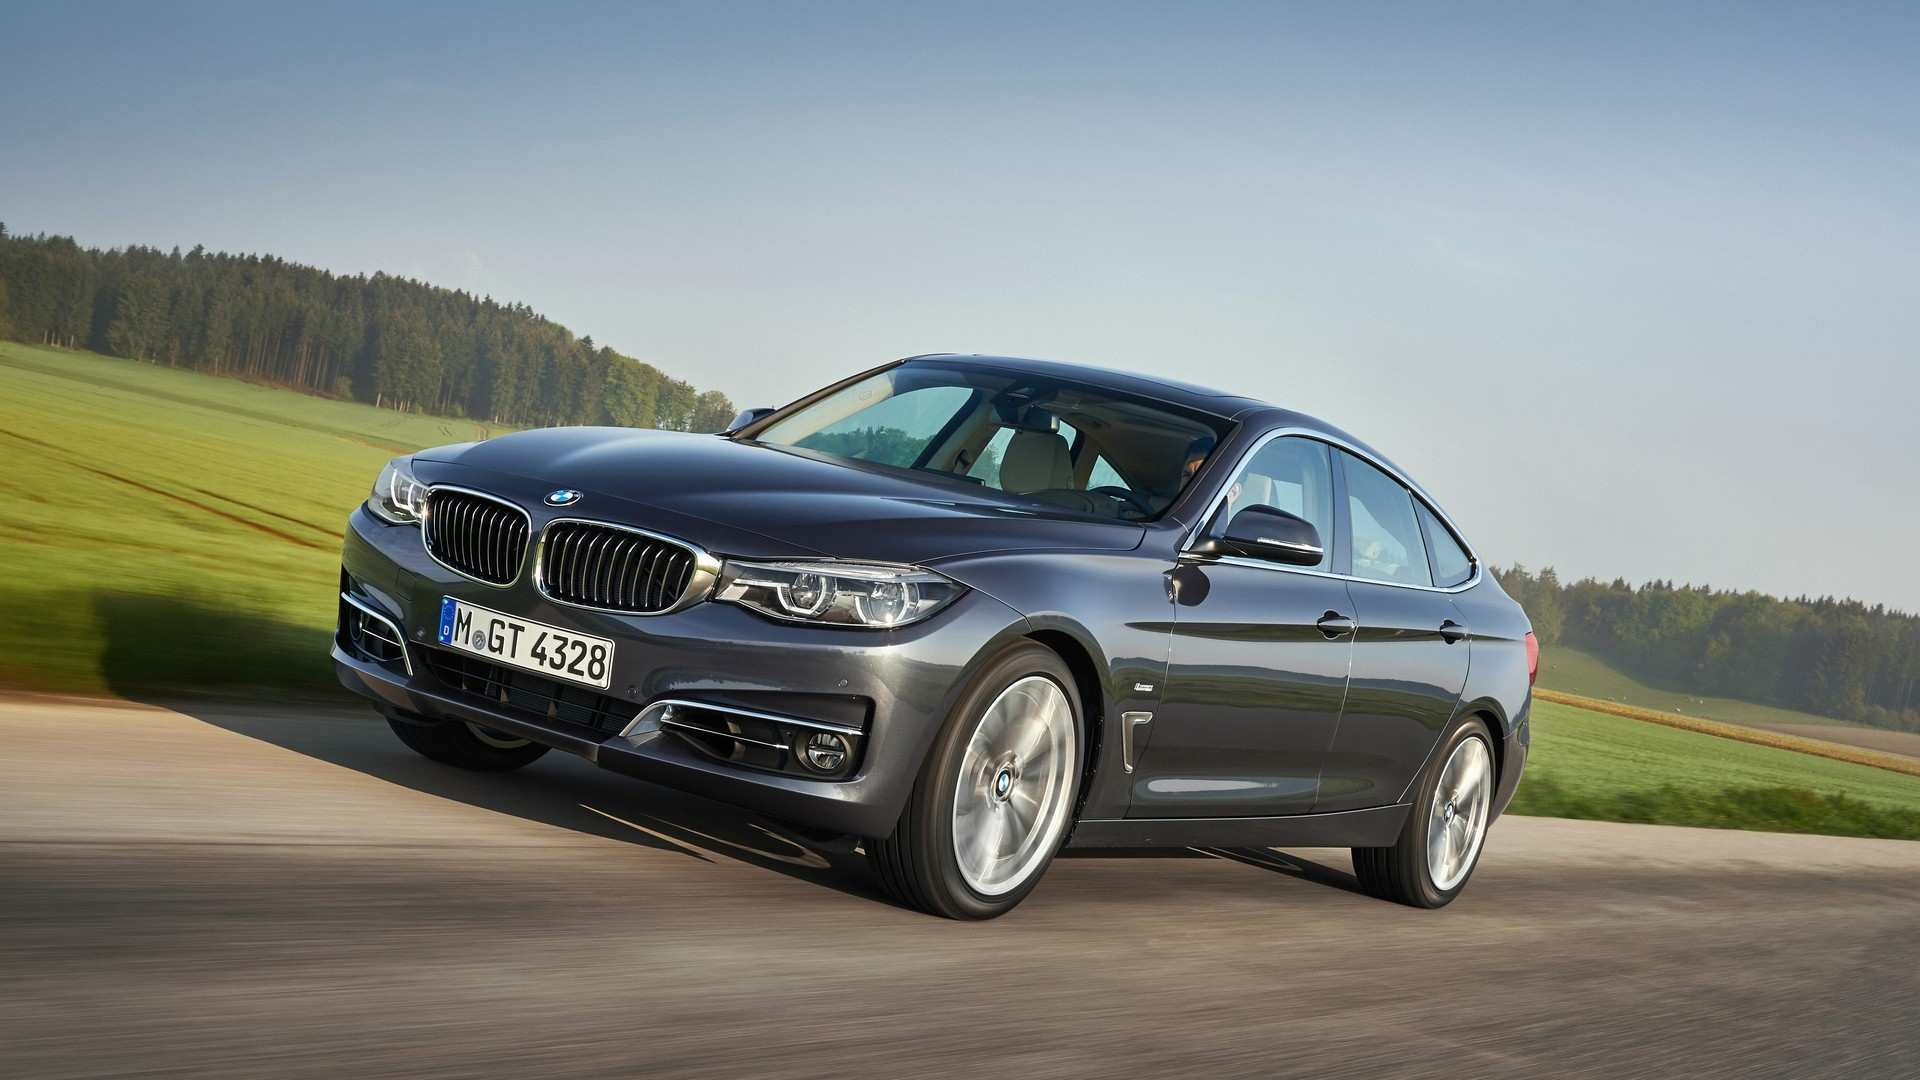 76 The Best 2020 BMW 3 Series Brings Specs And Review